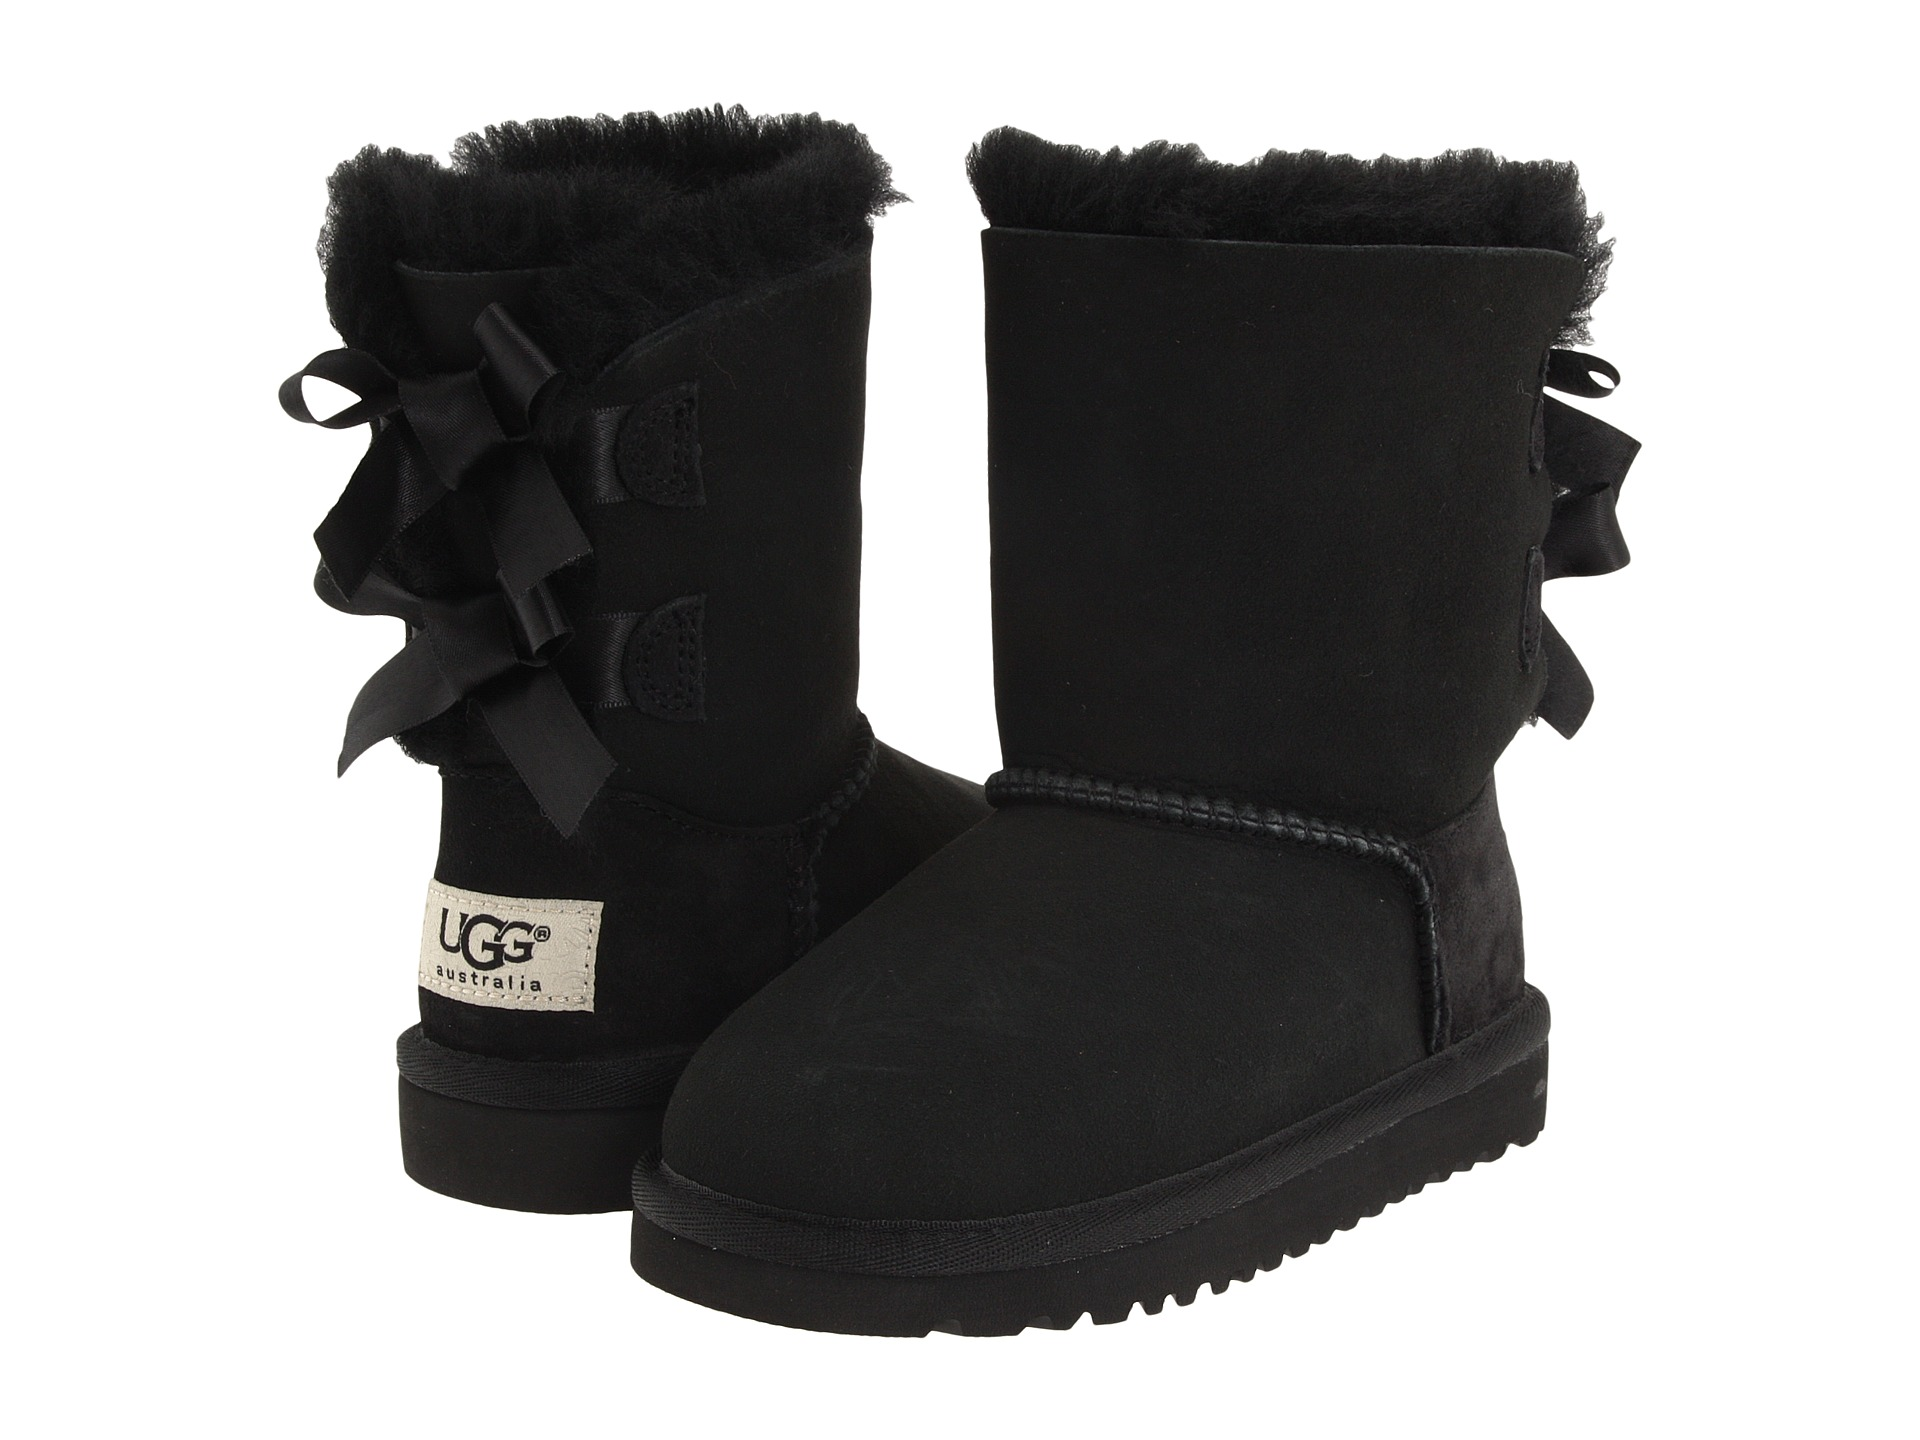 UGG Kids Bailey Bow (Toddler/Little Kid) - Zappos.com Free ...